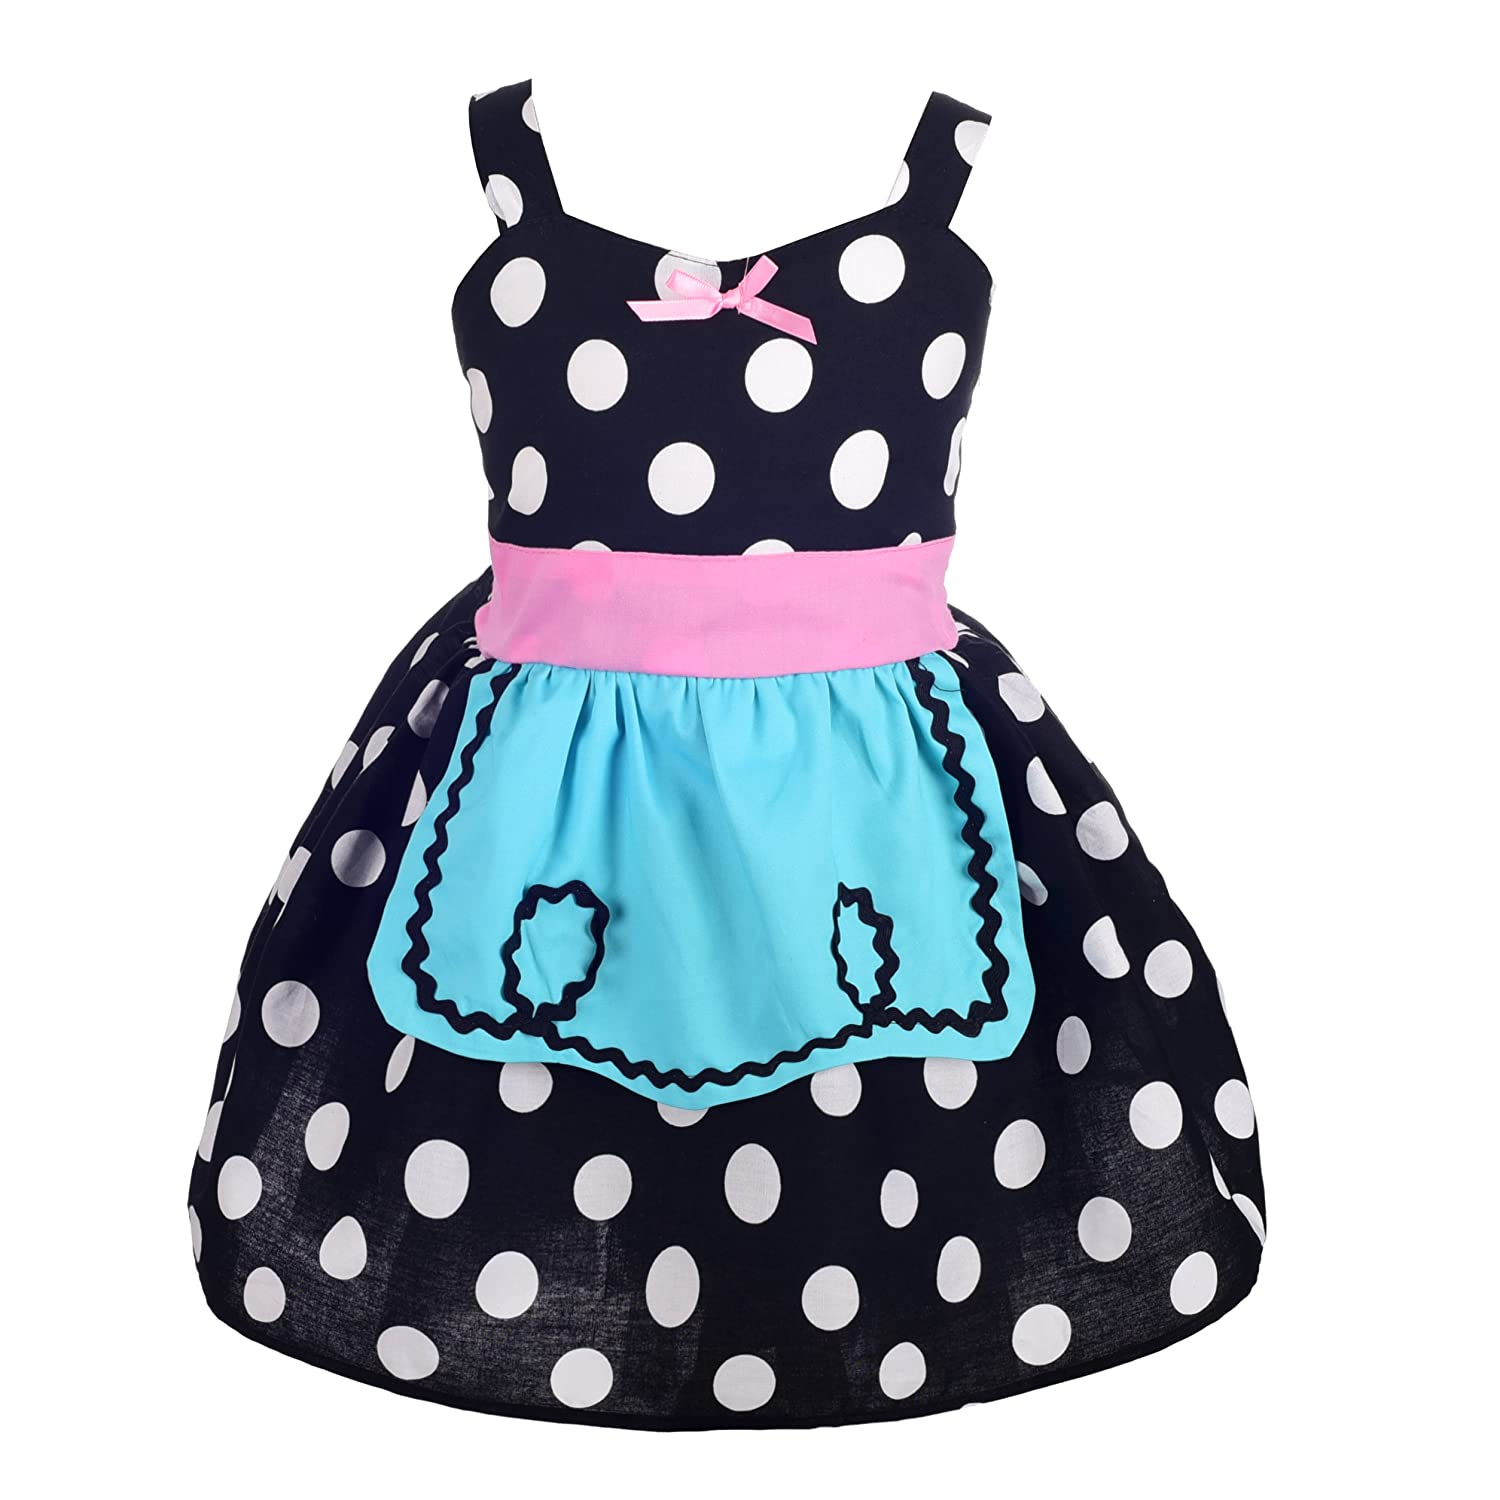 36d12fbc4a164 Dressy Daisy Princess Snow White Dress Alice Dress with Apron Summer  Dresses for Baby & Toddler